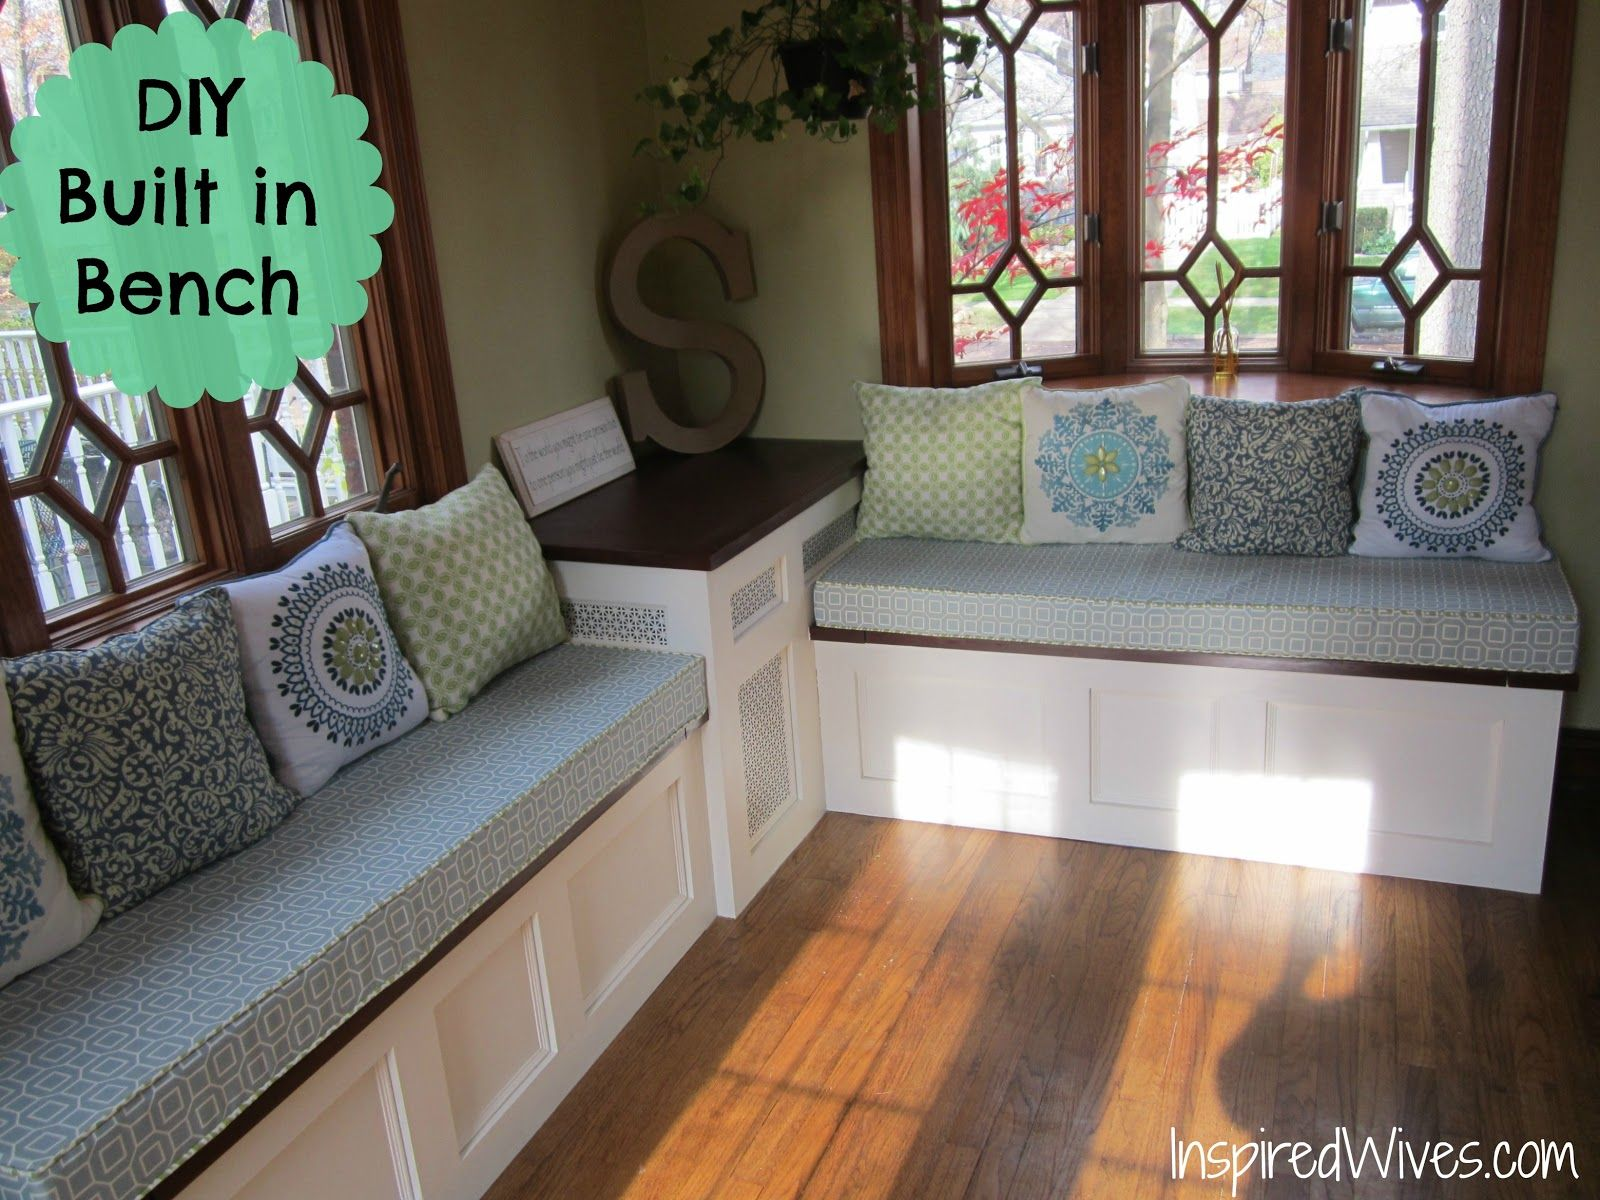 Built In Couch diy built in bench - this to cover up the sump pump. | rec room